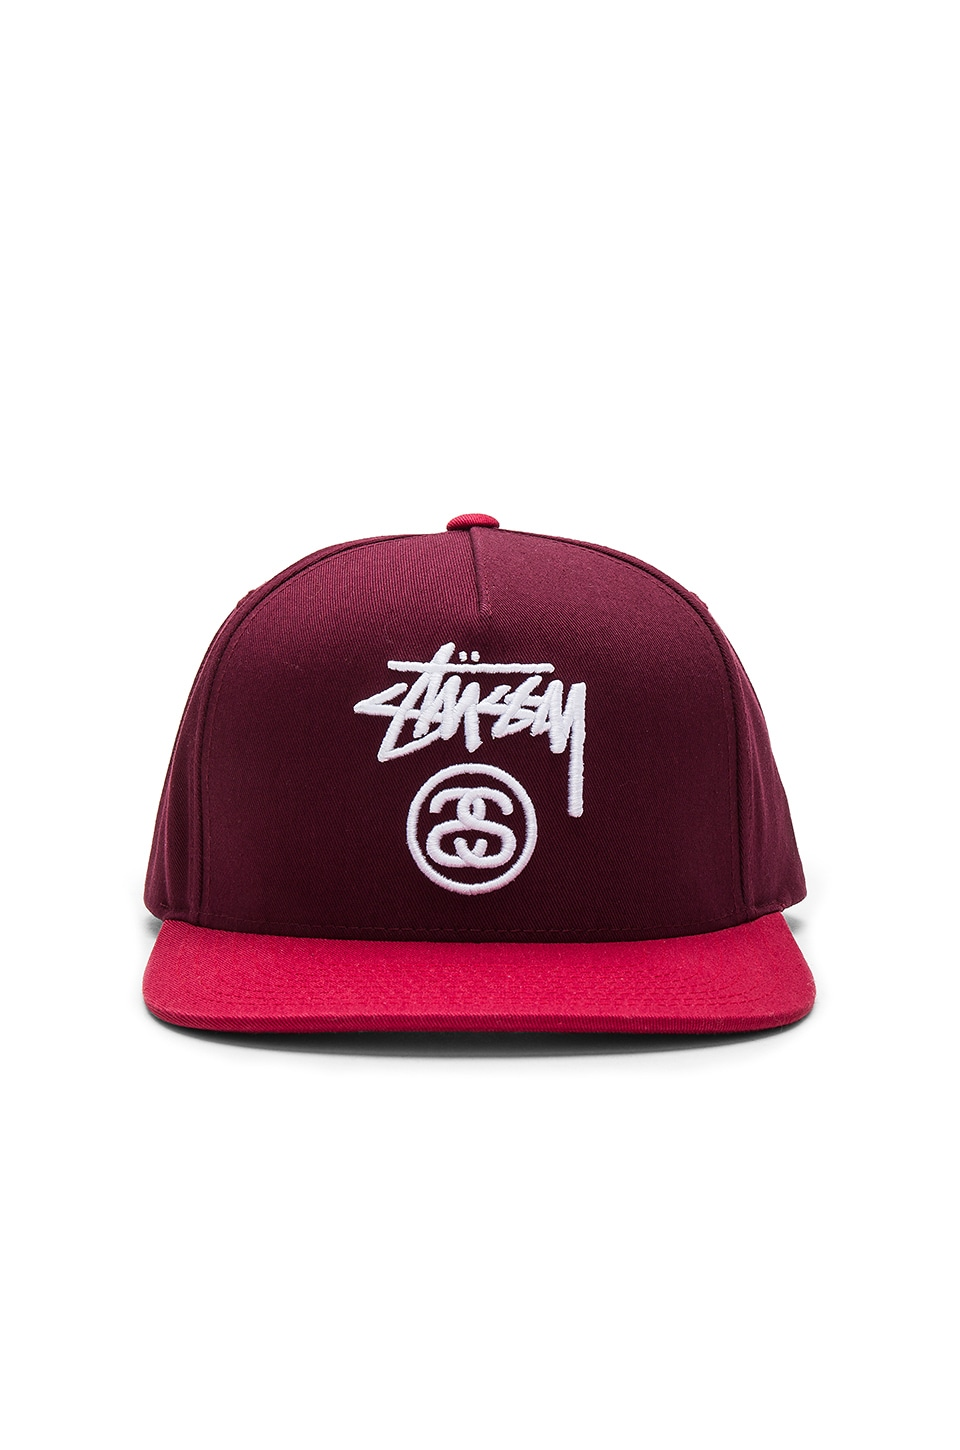 Stock Lock SP17 Snapback by Stussy